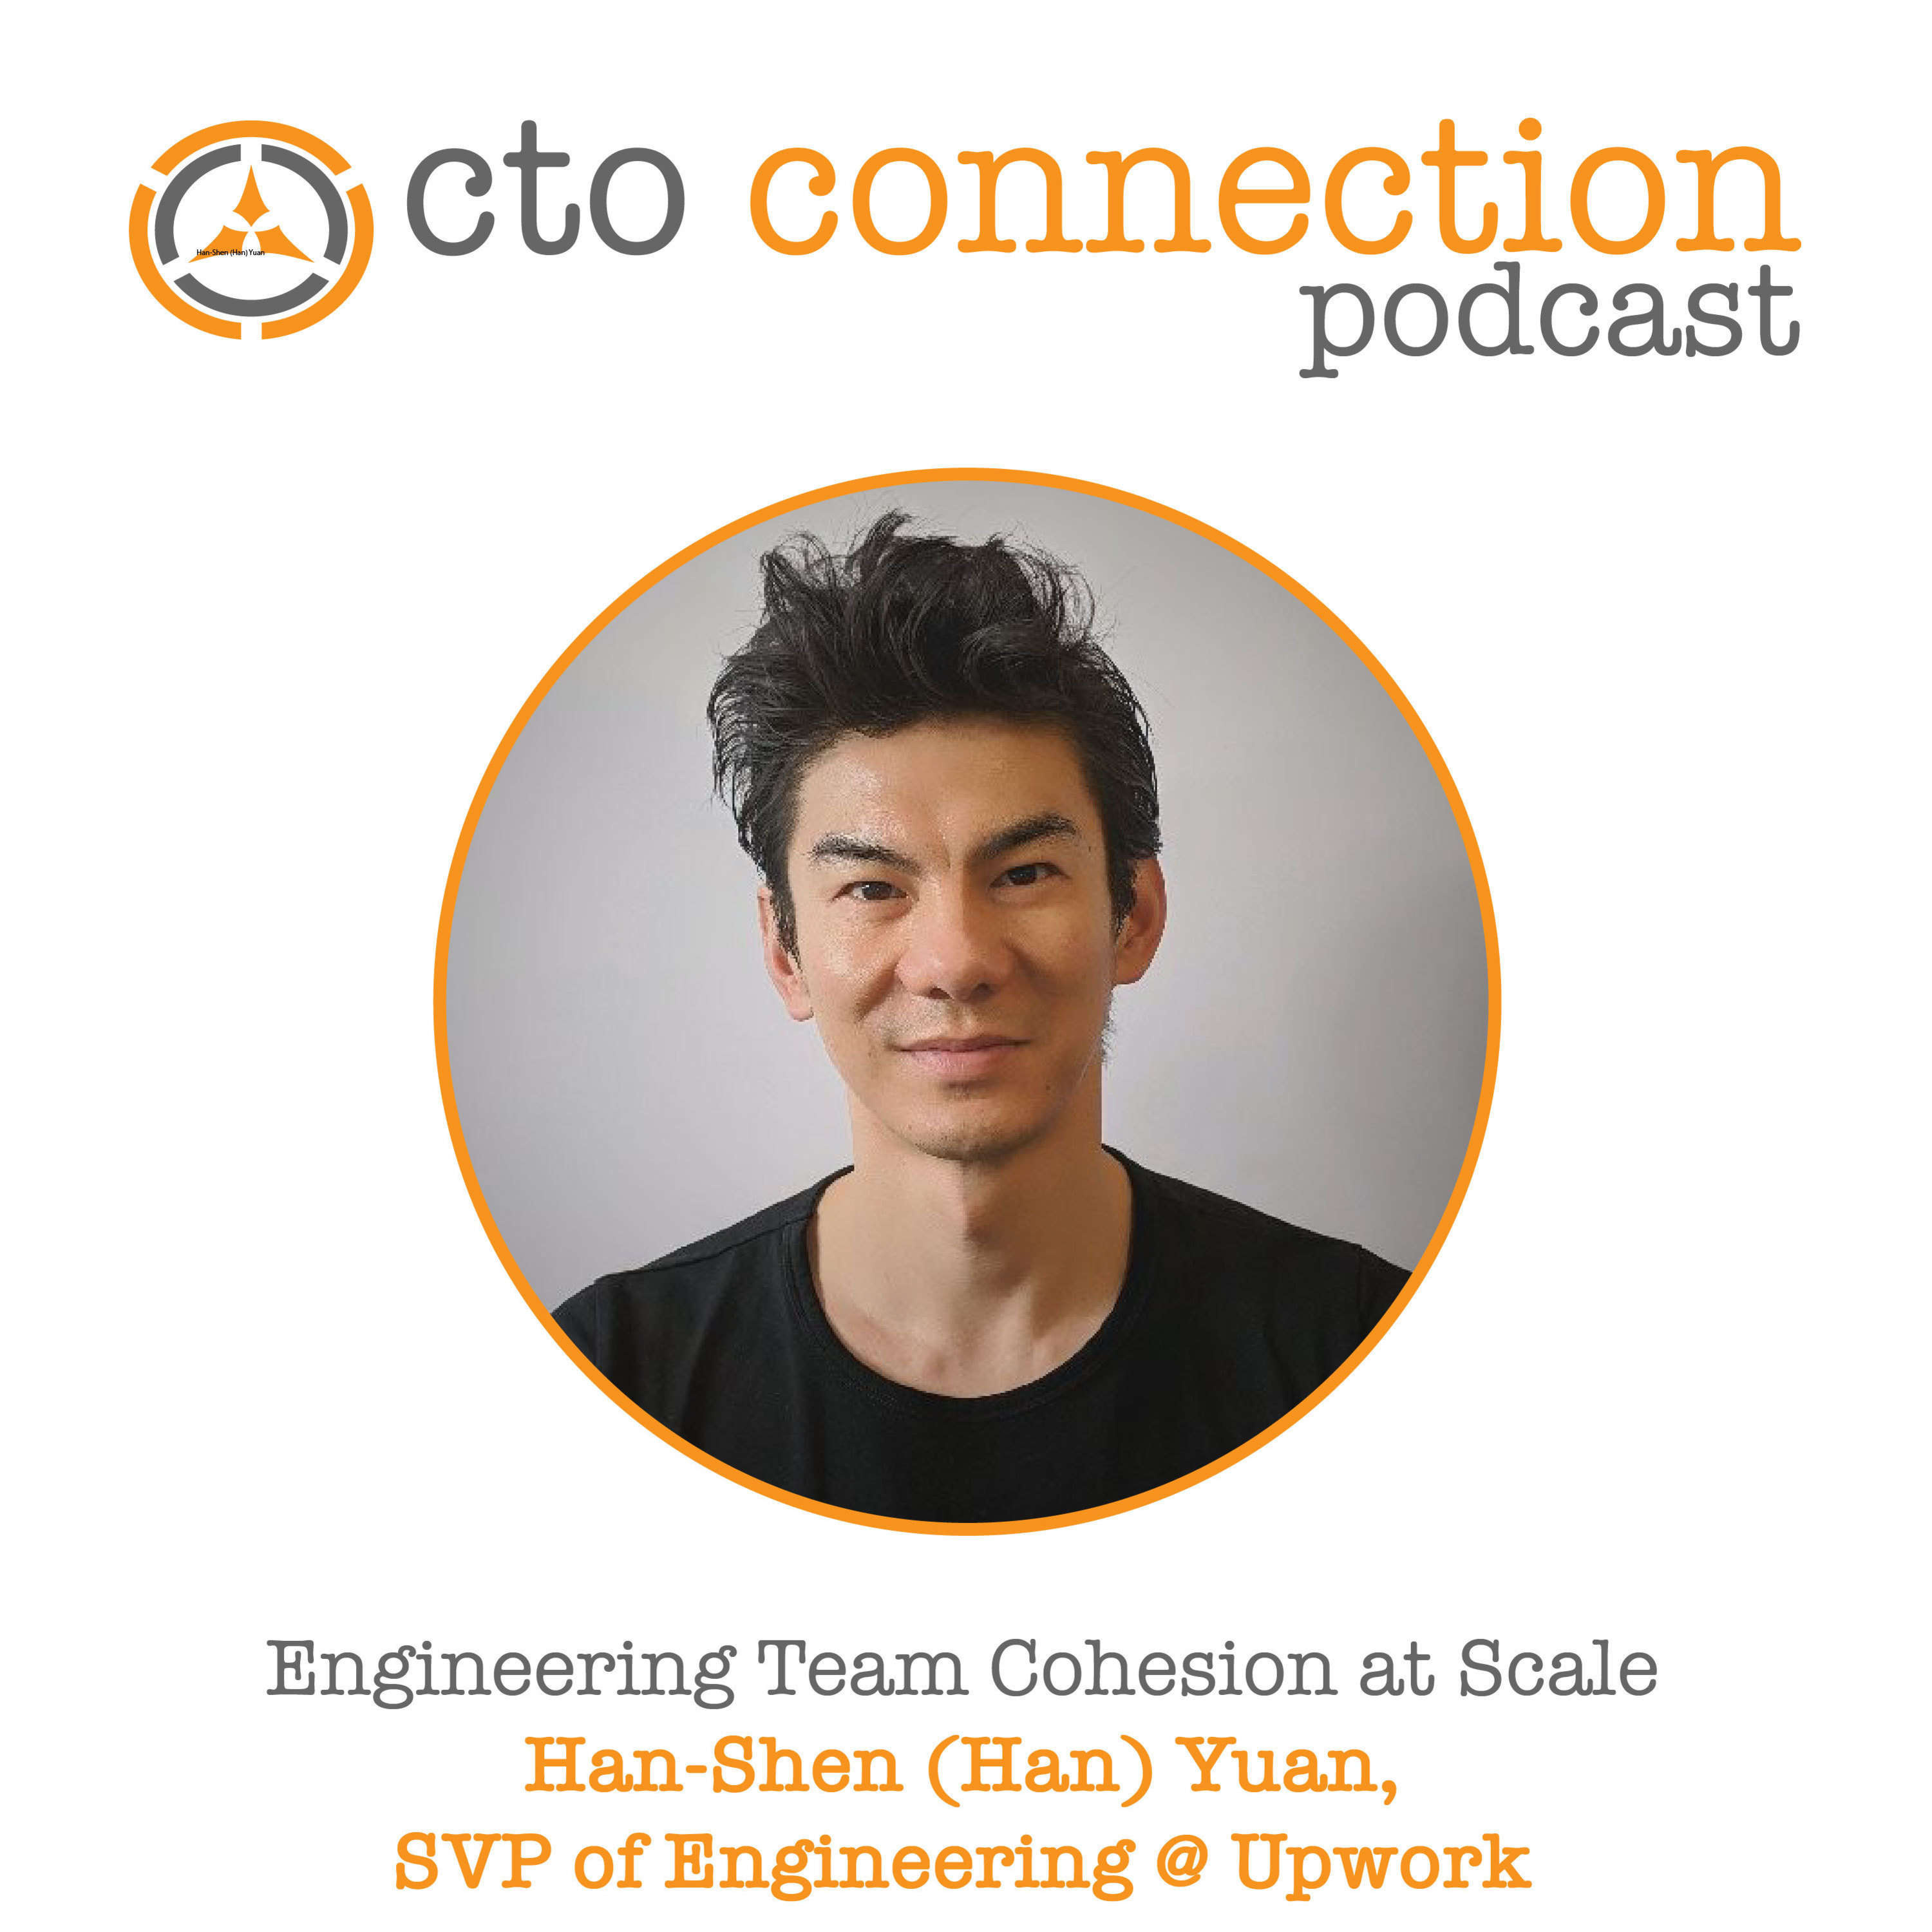 Engineering Team Cohesion at Scale with Han Yuan, SVP of Engineering @ Upwork